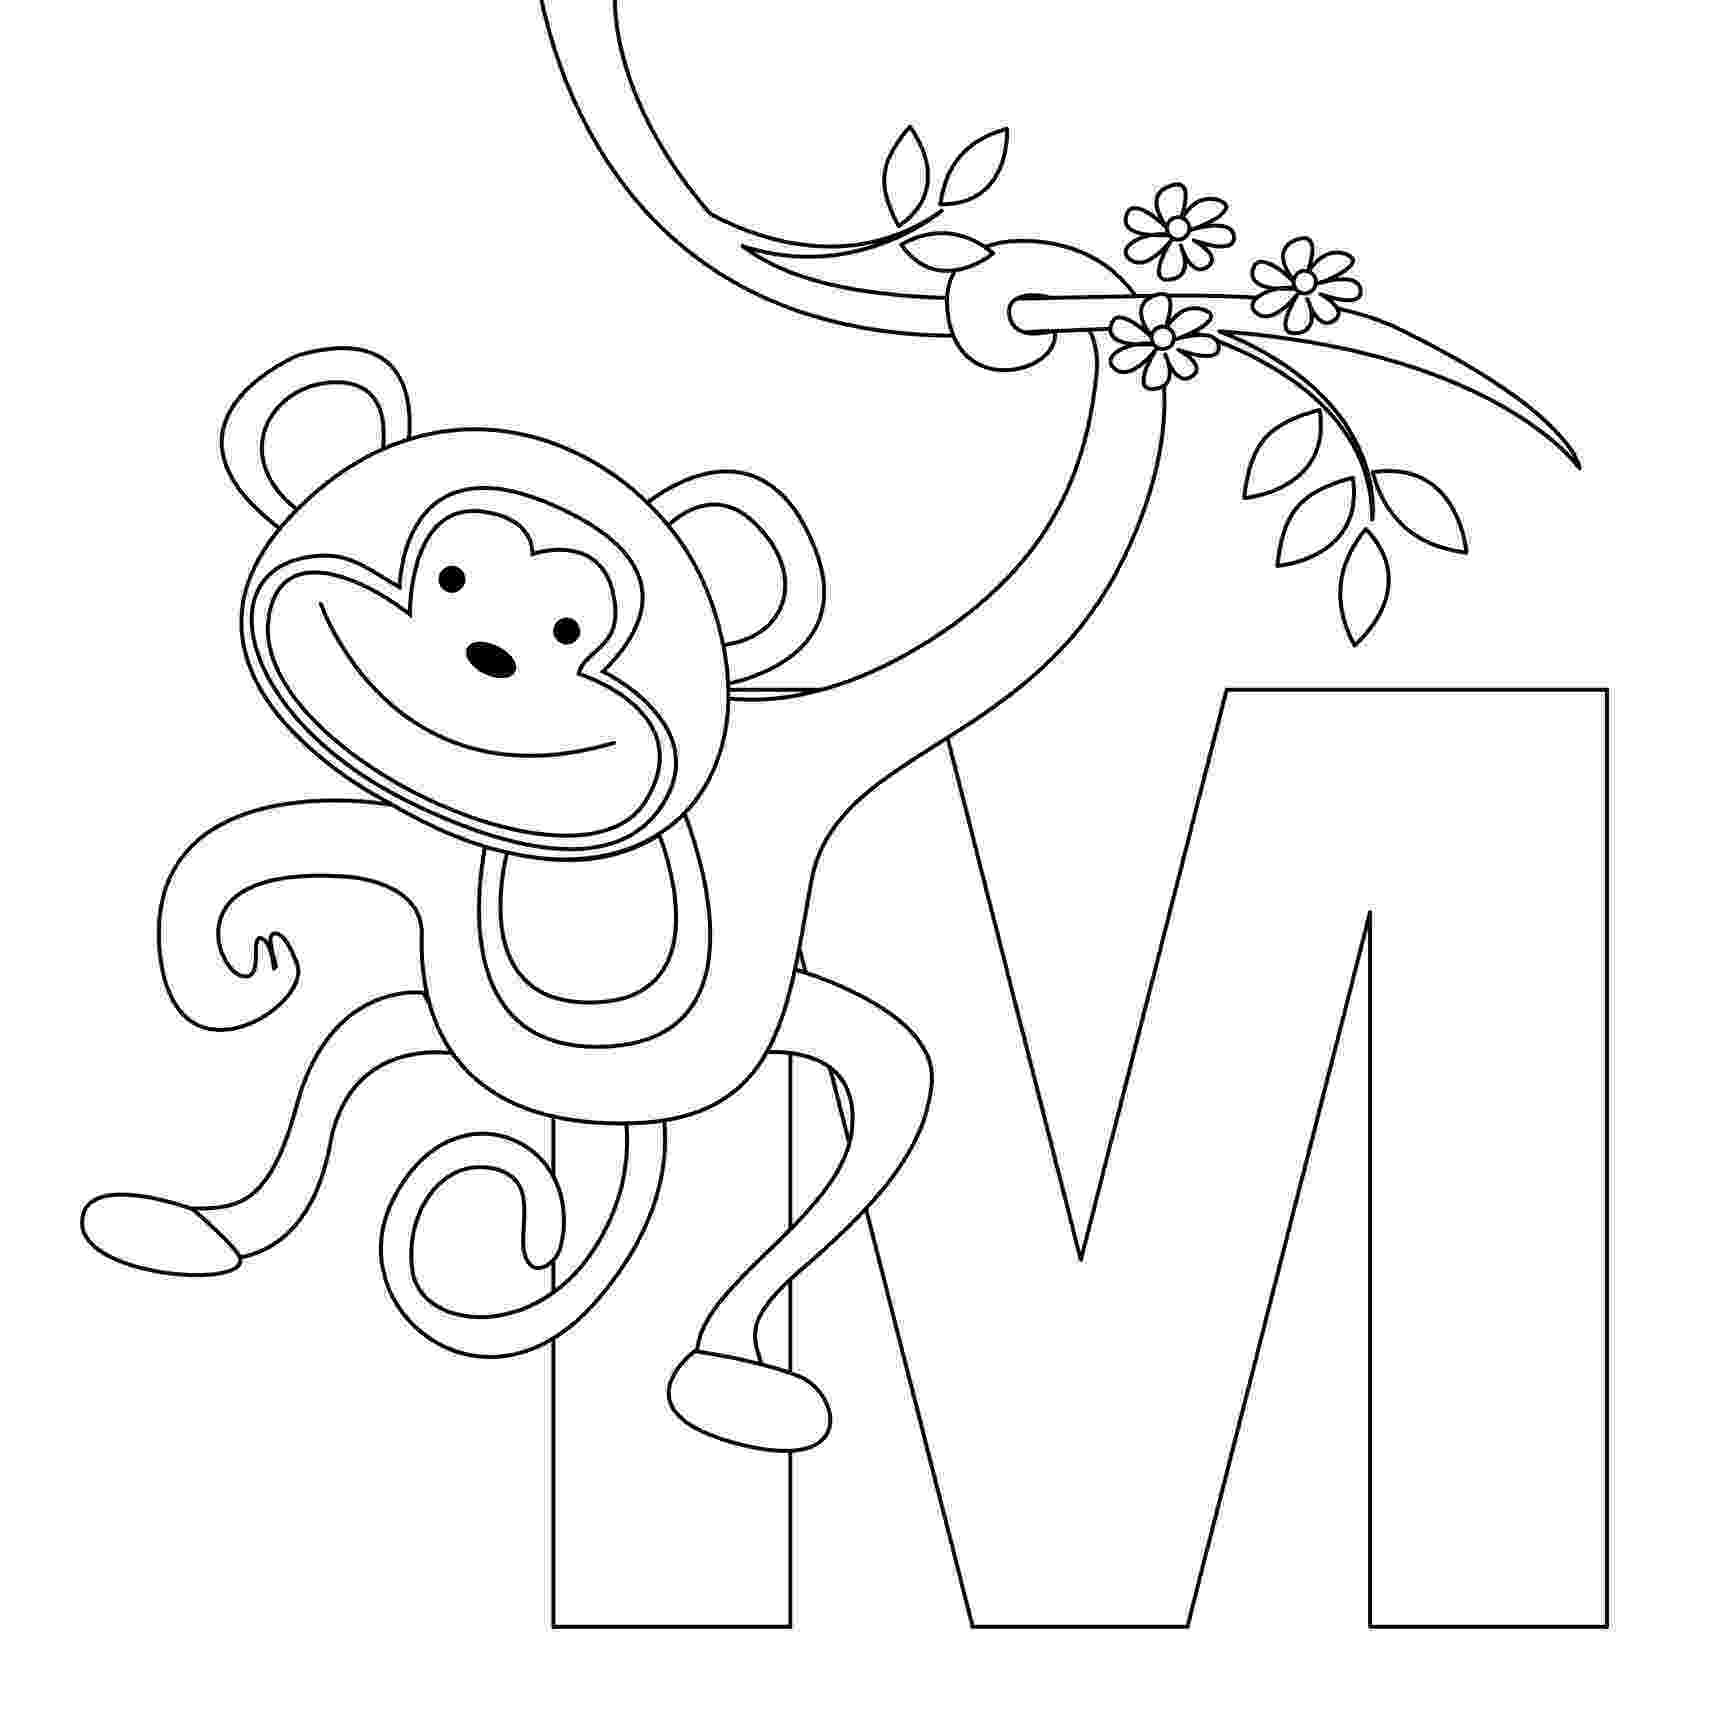 alphabet coloring worksheets free printable alphabet coloring pages for kids best alphabet worksheets coloring